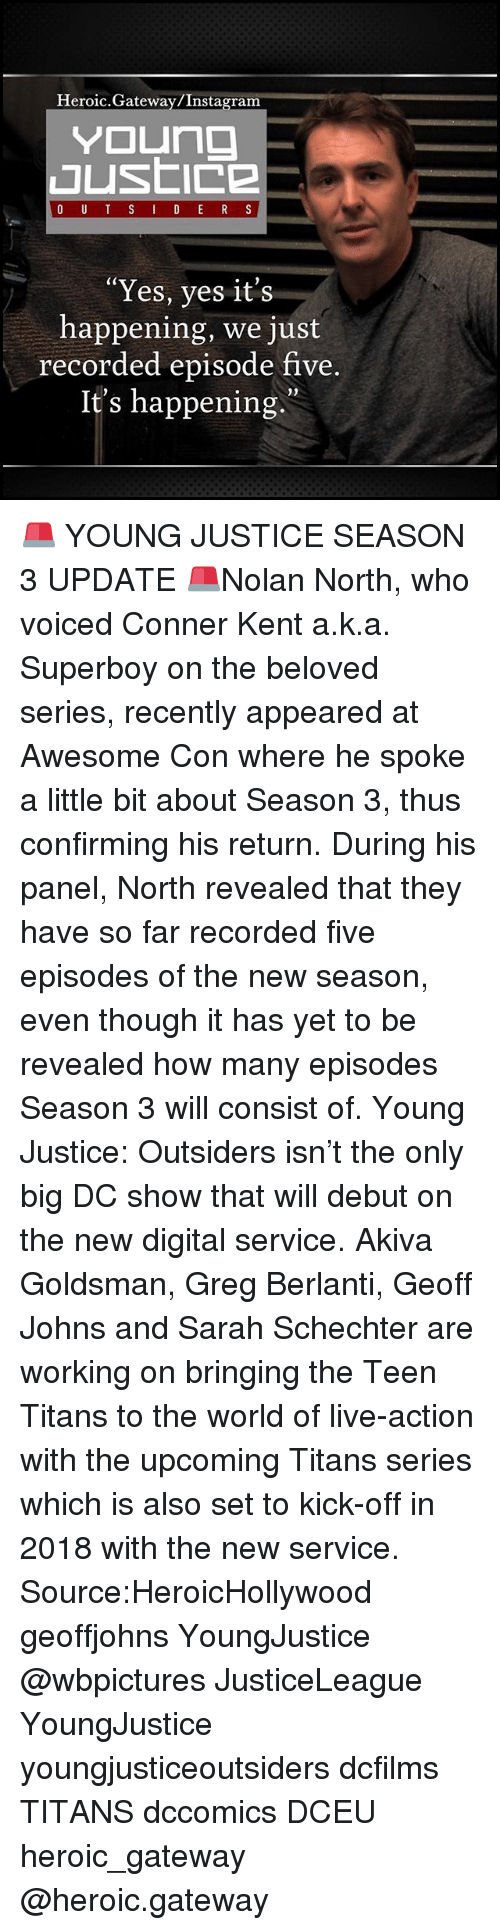 "outsiders: Heroic.Gateway/Instagram  Yes, yes it's  happening, we just  recorded episode five  It's happening.""  0) 🚨 YOUNG JUSTICE SEASON 3 UPDATE 🚨Nolan North, who voiced Conner Kent a.k.a. Superboy on the beloved series, recently appeared at Awesome Con where he spoke a little bit about Season 3, thus confirming his return. During his panel, North revealed that they have so far recorded five episodes of the new season, even though it has yet to be revealed how many episodes Season 3 will consist of. Young Justice: Outsiders isn't the only big DC show that will debut on the new digital service. Akiva Goldsman, Greg Berlanti, Geoff Johns and Sarah Schechter are working on bringing the Teen Titans to the world of live-action with the upcoming Titans series which is also set to kick-off in 2018 with the new service. Source:HeroicHollywood geoffjohns YoungJustice @wbpictures JusticeLeague YoungJustice youngjusticeoutsiders dcfilms TITANS dccomics DCEU heroic_gateway @heroic.gateway"